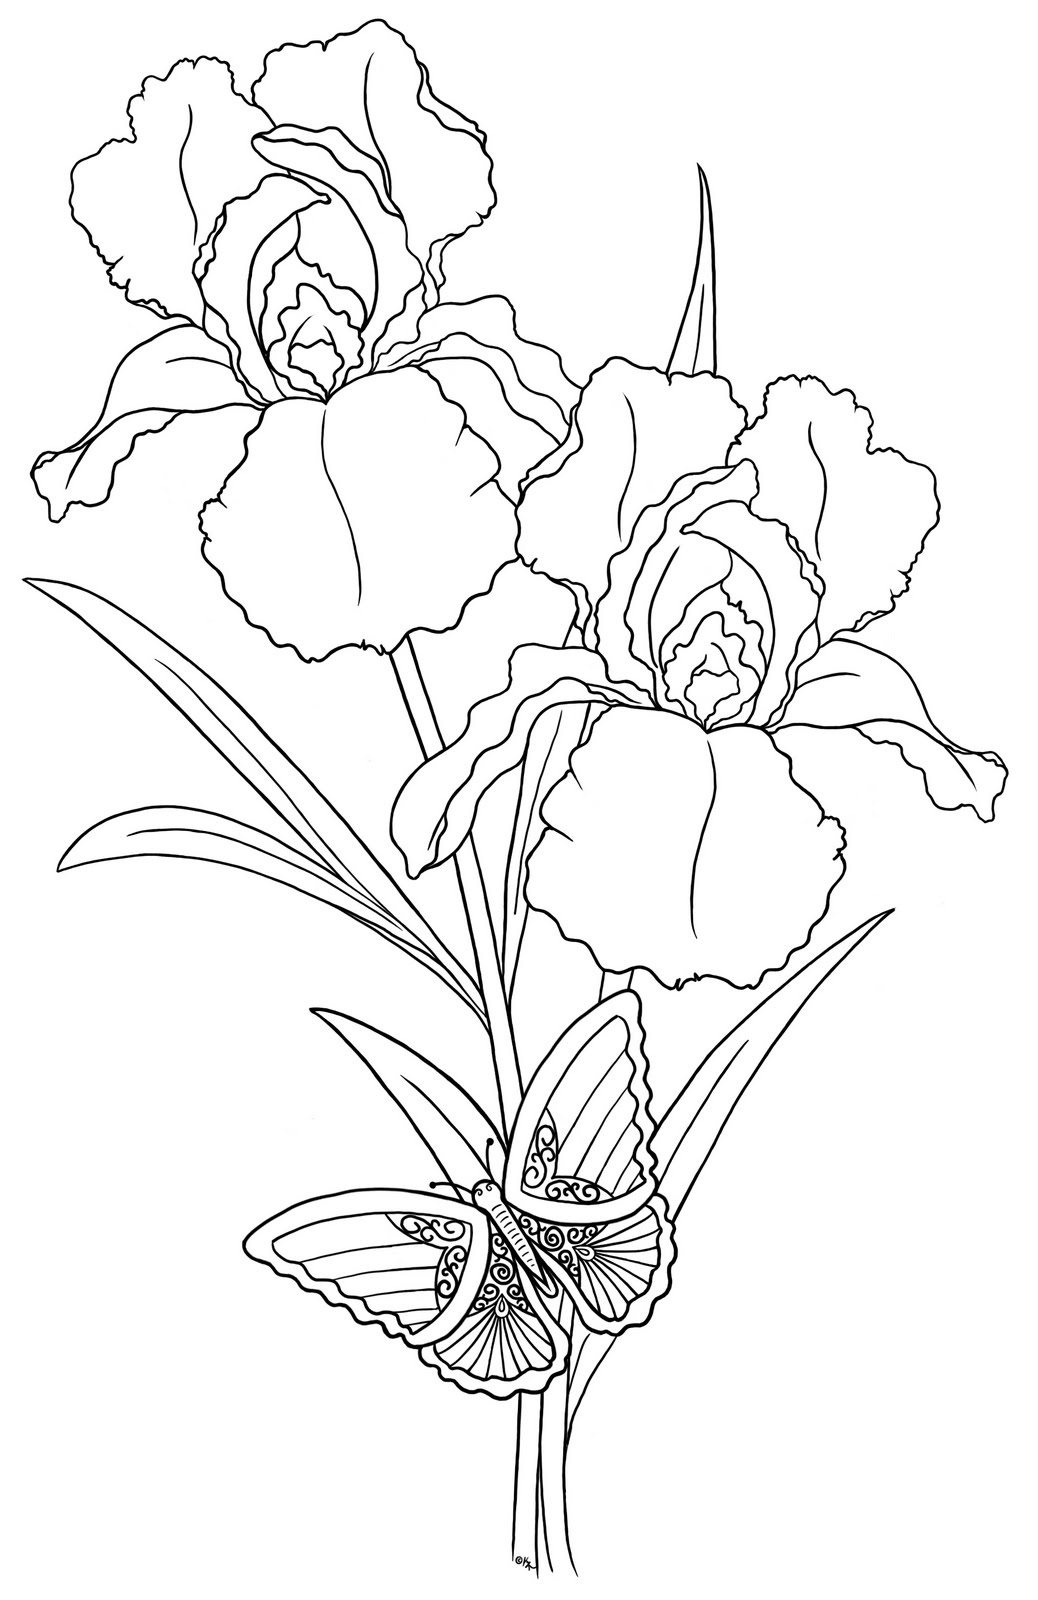 Daffodils, Coloring pages and Flower coloring pages on